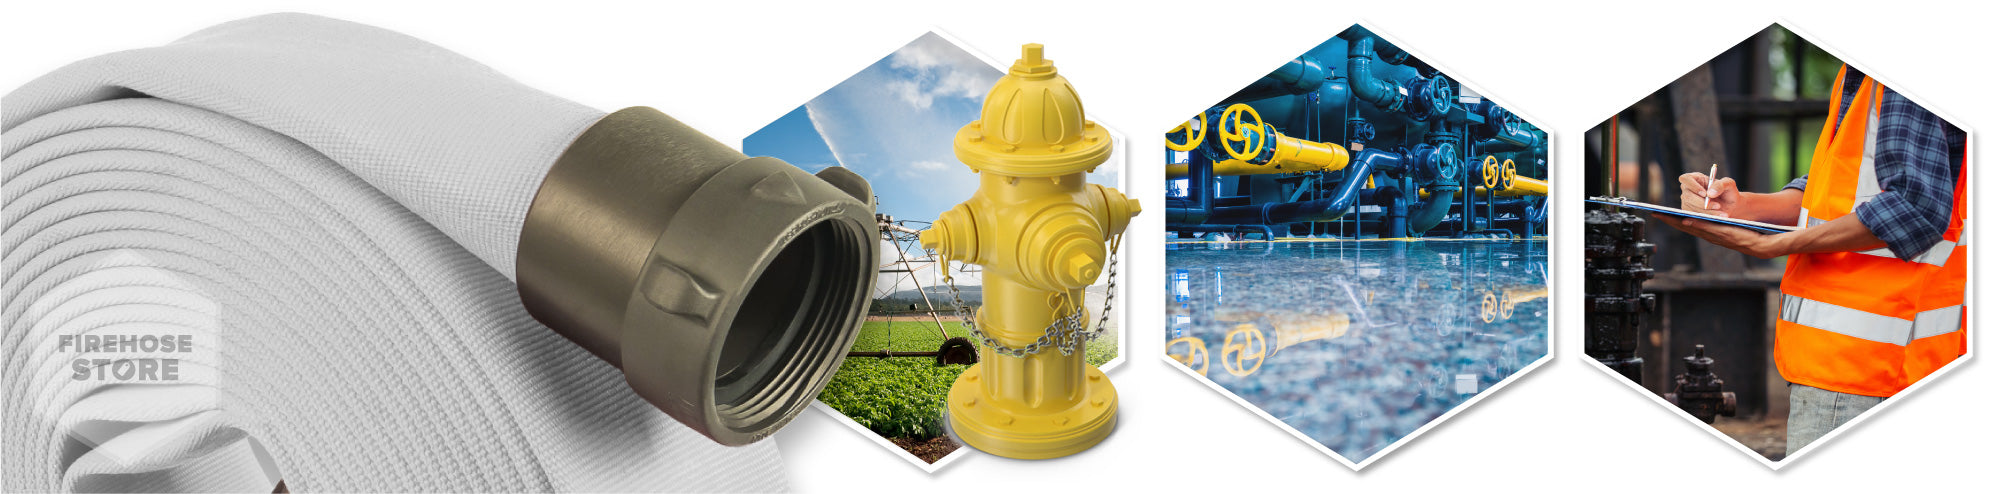 2-1-2 Inch x 75 Feet Fire Hydrant Hose Graphic Overview